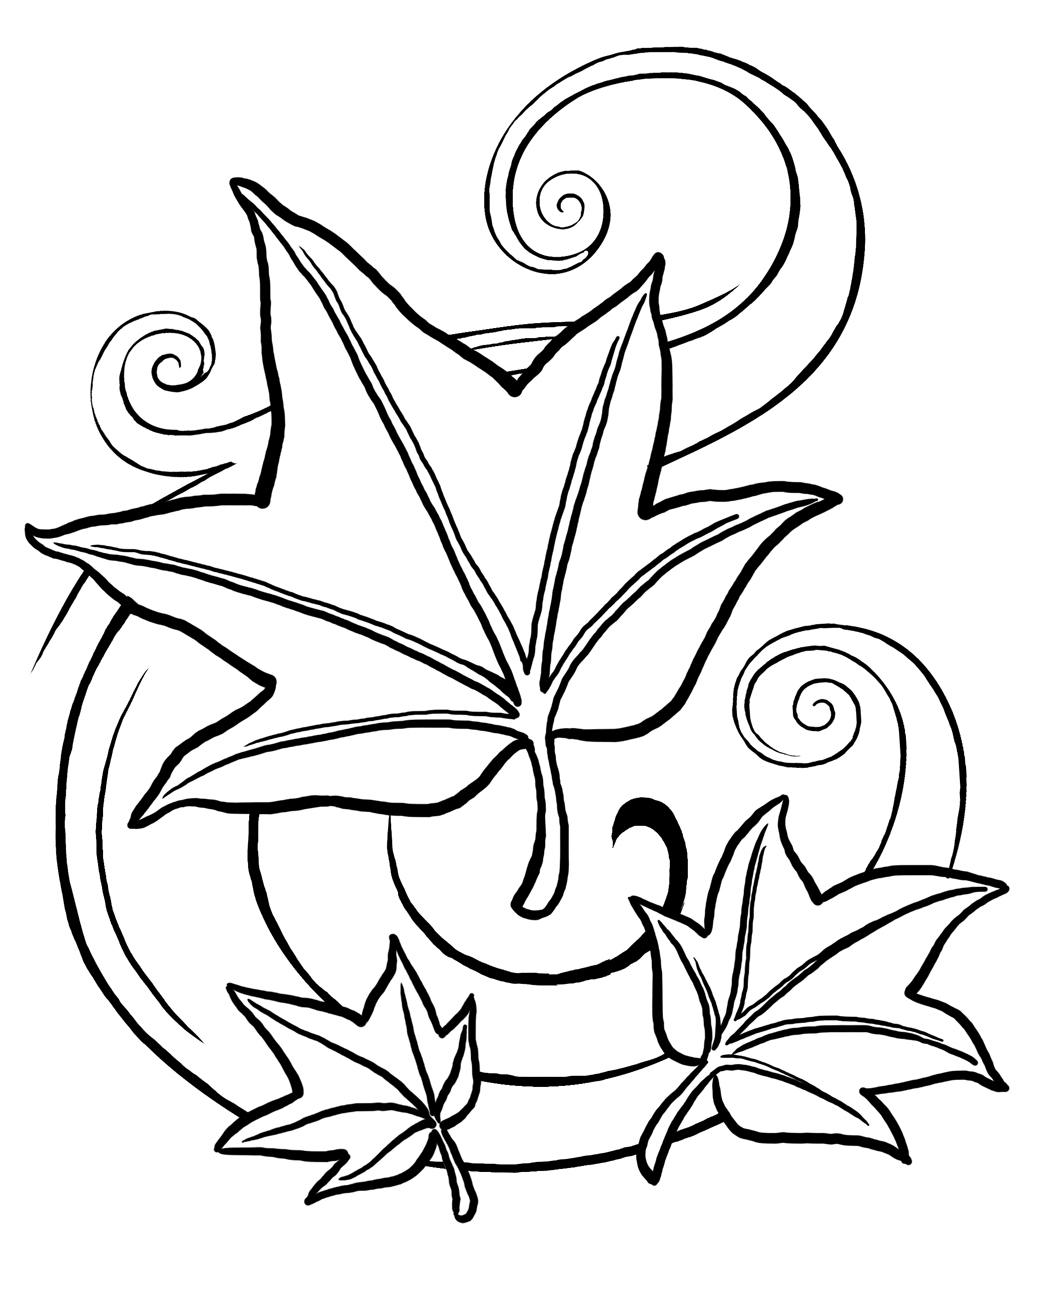 coloring sheet leaves coloring now blog archive leaf coloring pages leaves sheet coloring